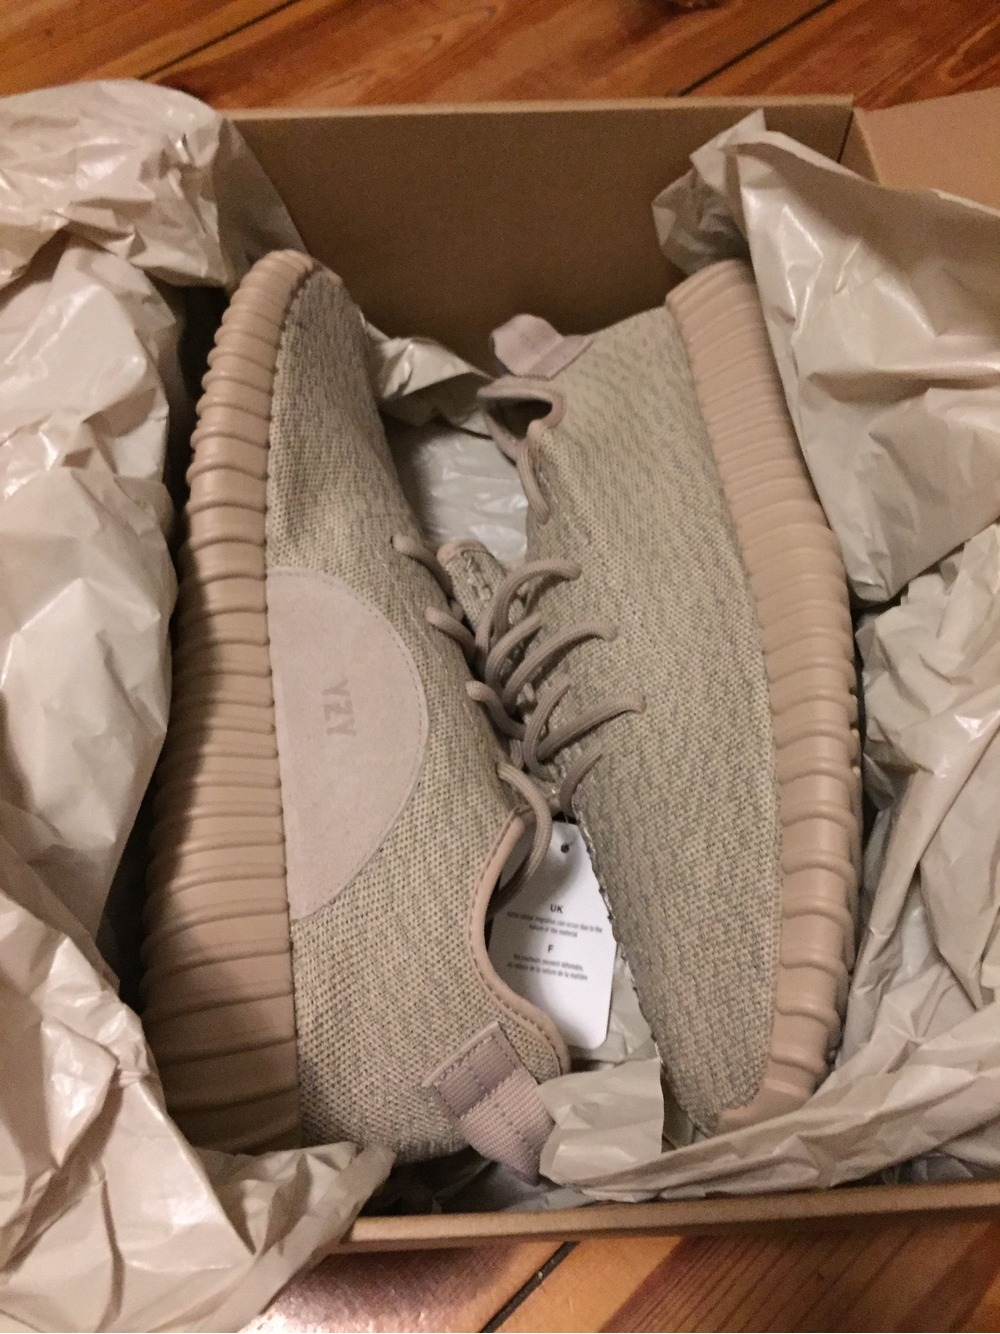 Shop Yeezy Boost 350 V2 'Cream White' Links CP9366 Canada